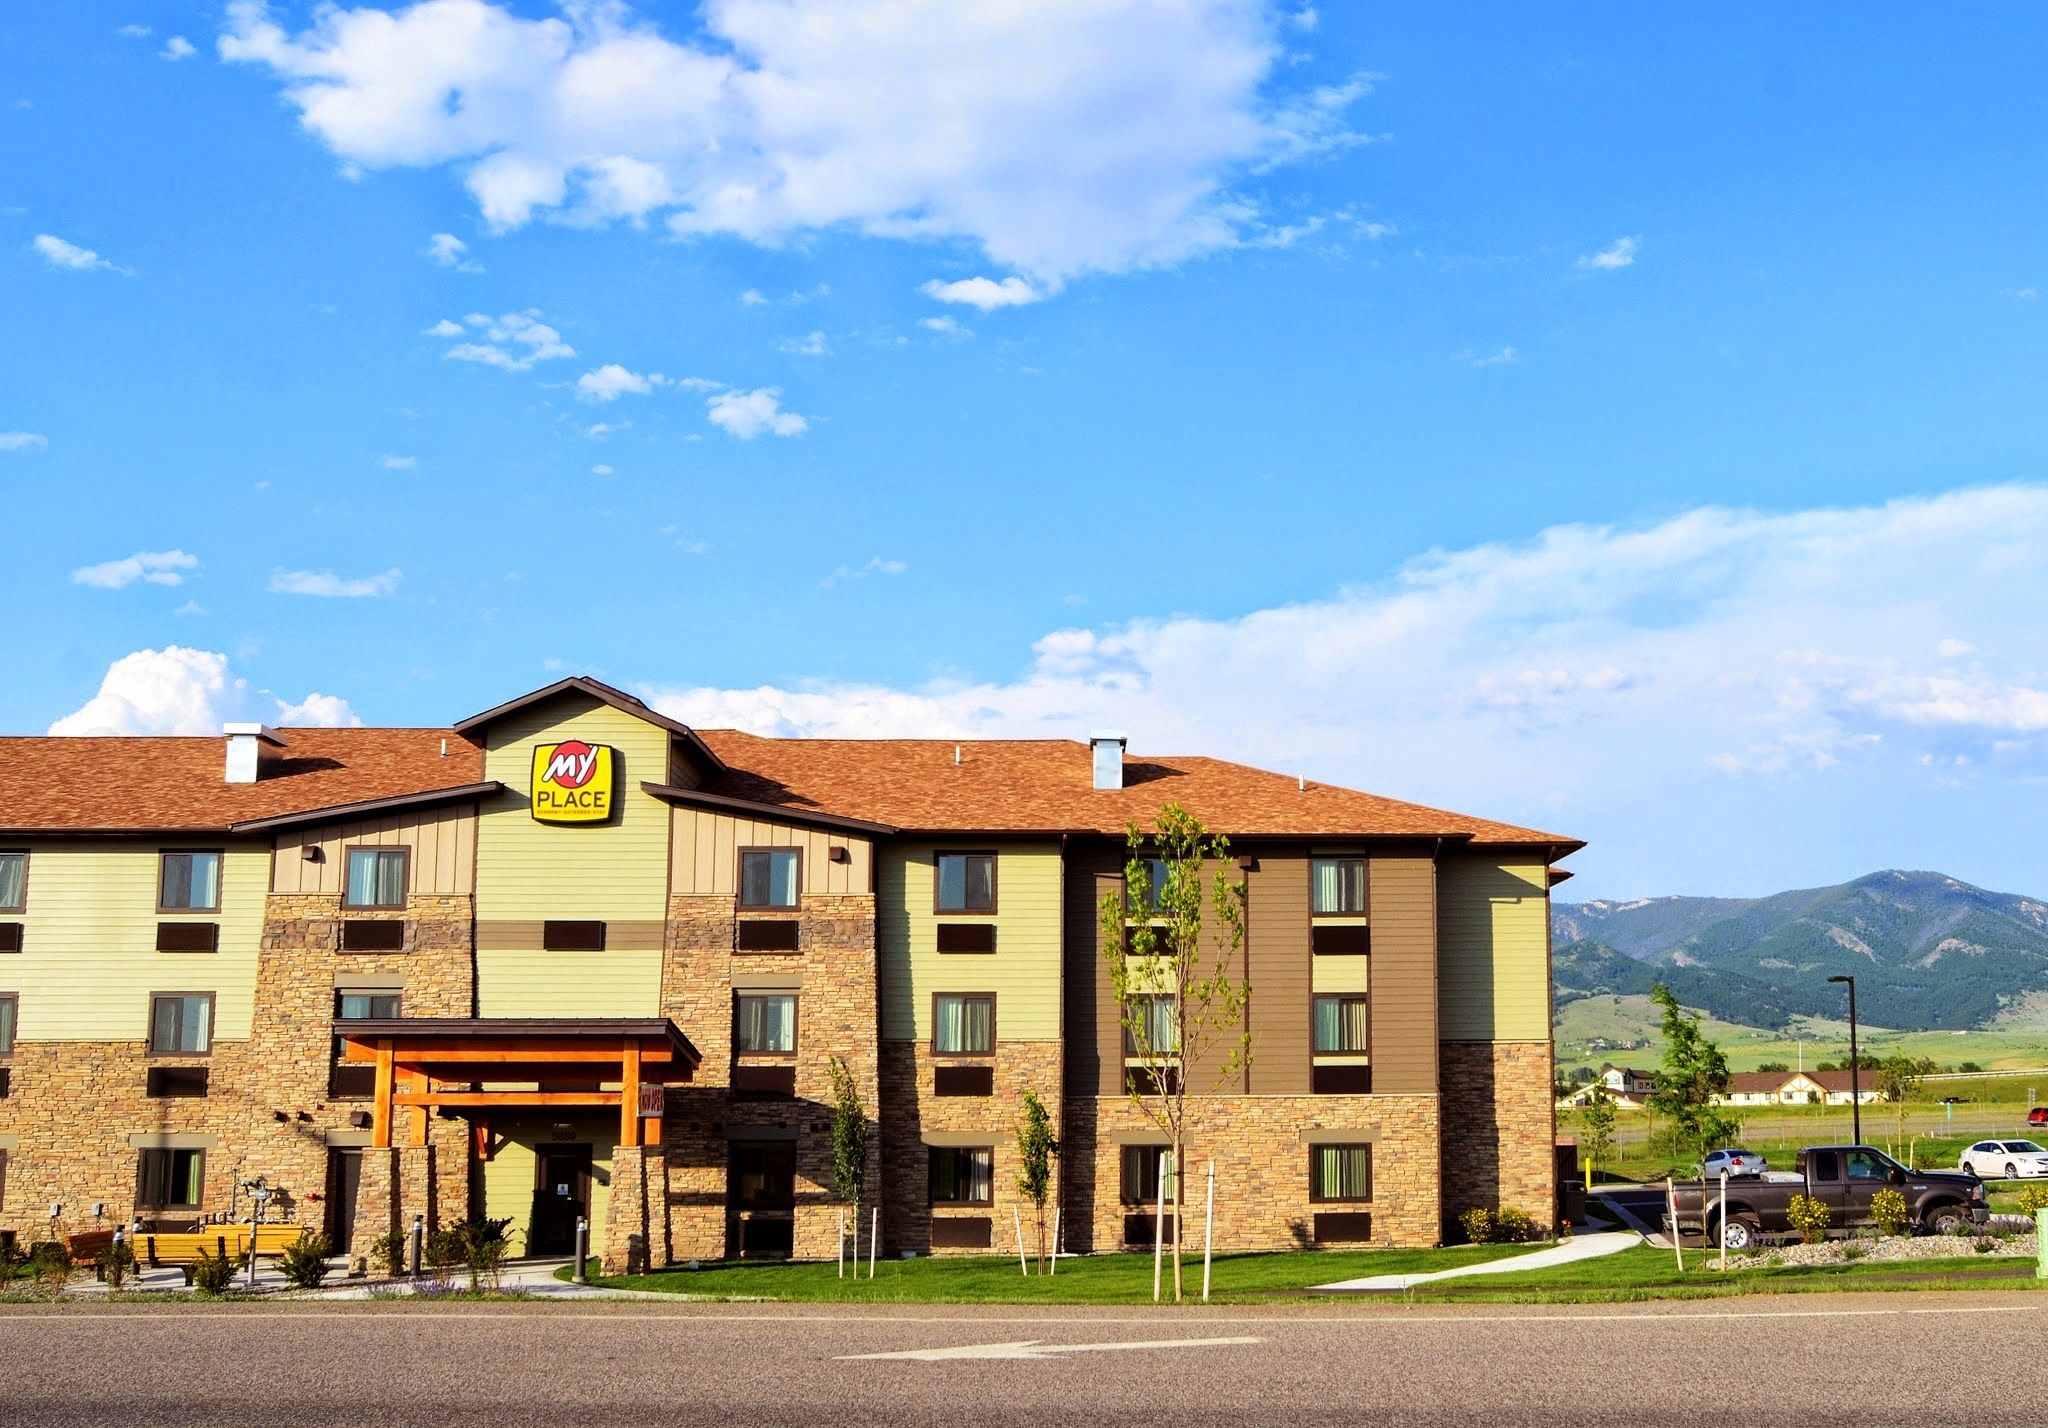 my place hotel bozeman mt in bozeman mt hotels. Black Bedroom Furniture Sets. Home Design Ideas